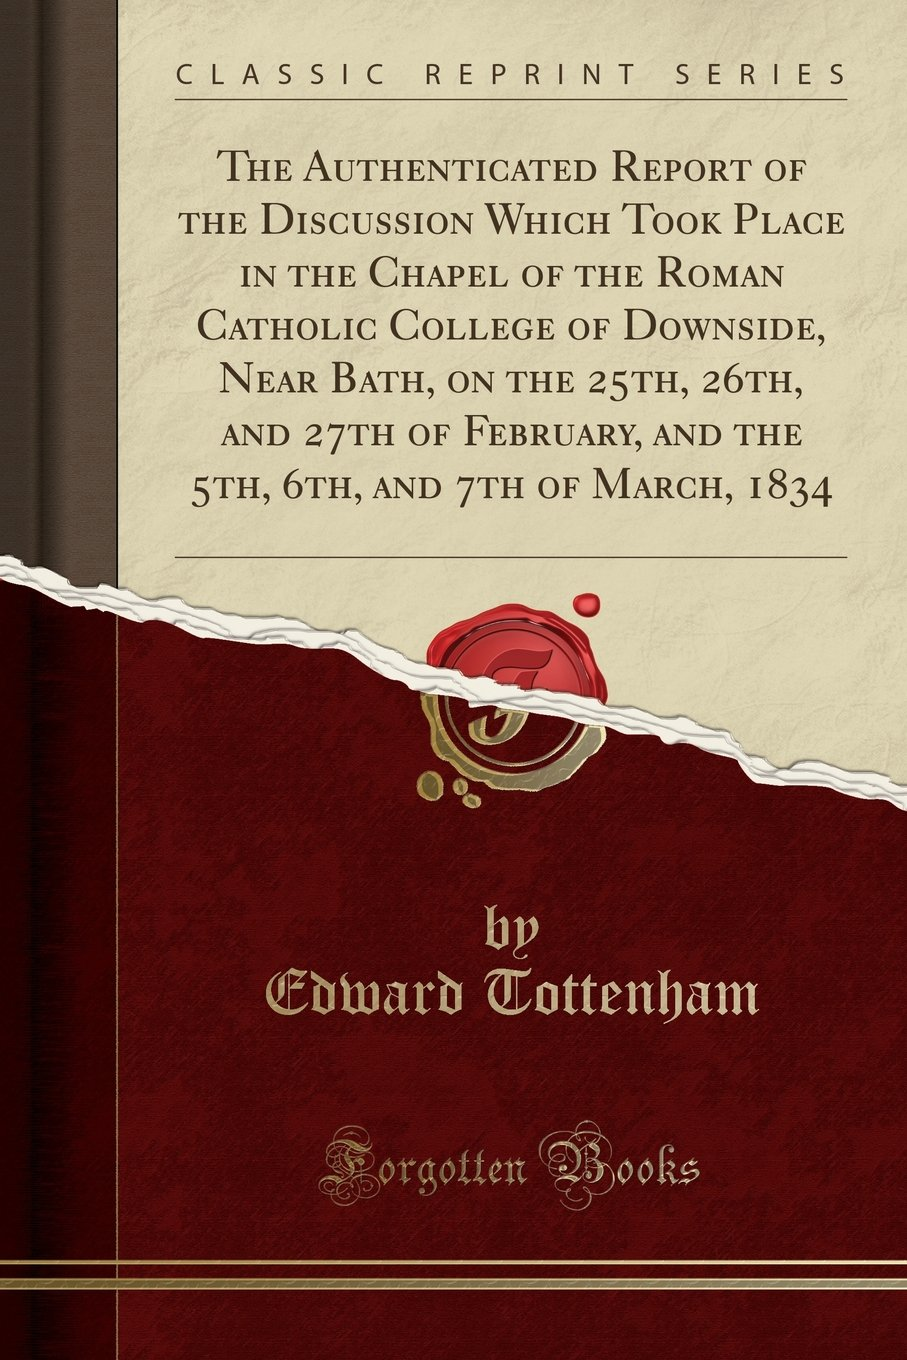 Download The Authenticated Report of the Discussion Which Took Place in the Chapel of the Roman Catholic College of Downside, Near Bath, on the 25th, 26th, and ... 6th, and 7th of March, 1834 (Classic Reprint) pdf epub